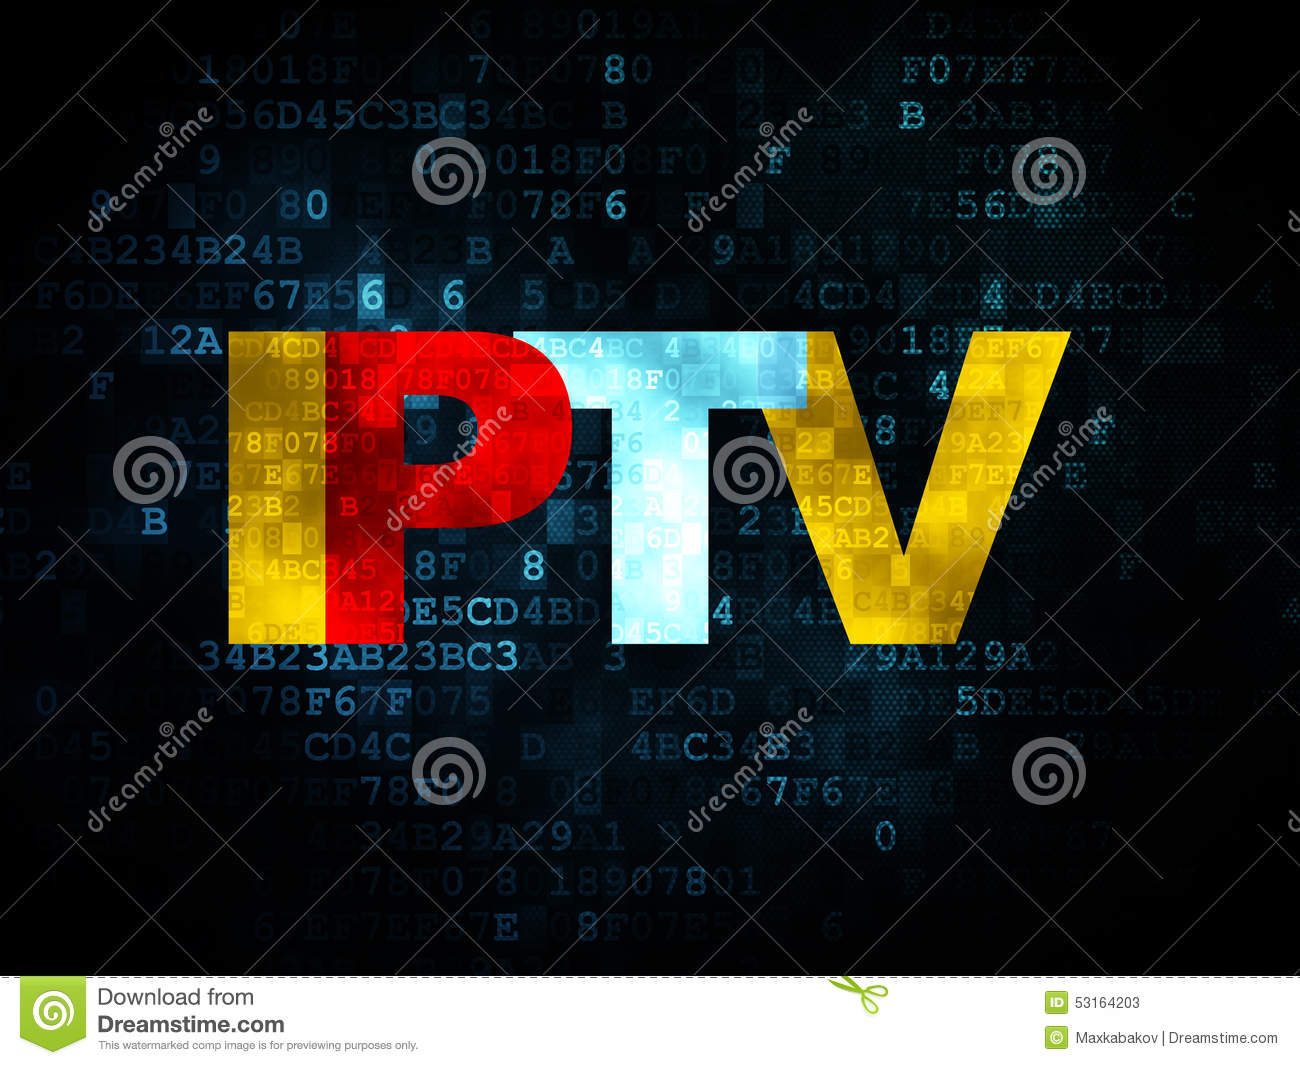 web-design-concept-iptv-digital-background-pixelated-text-d-render-53164203.jpg